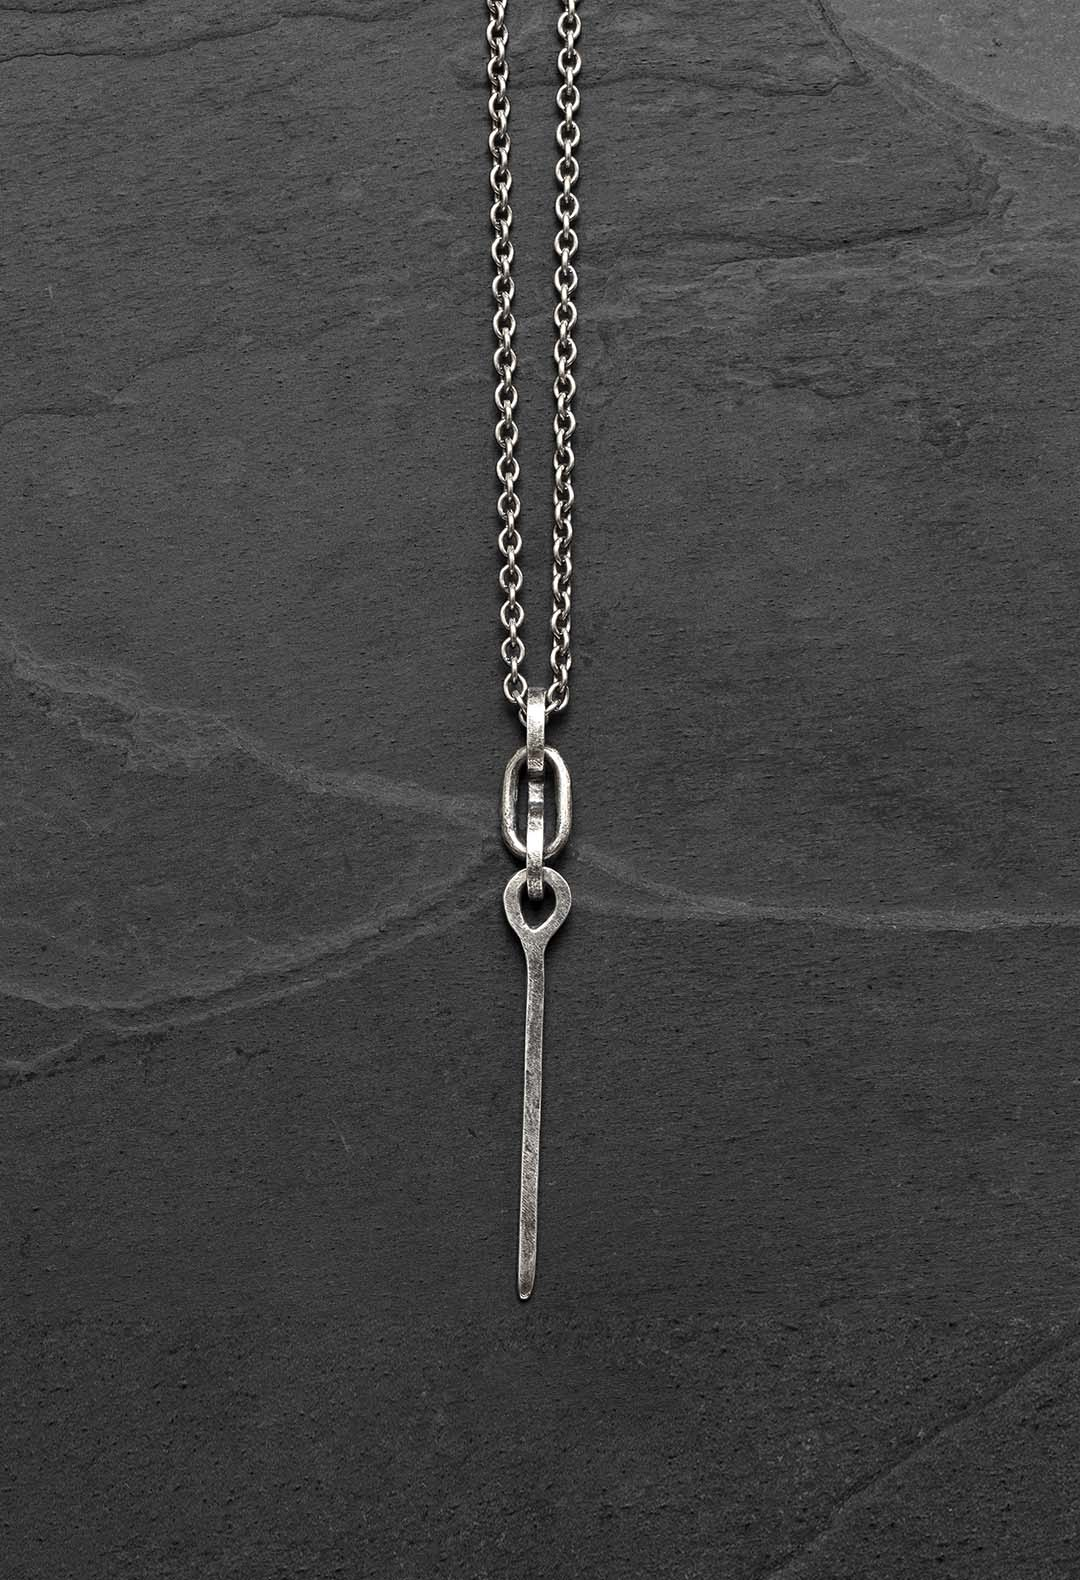 Linked spike necklace